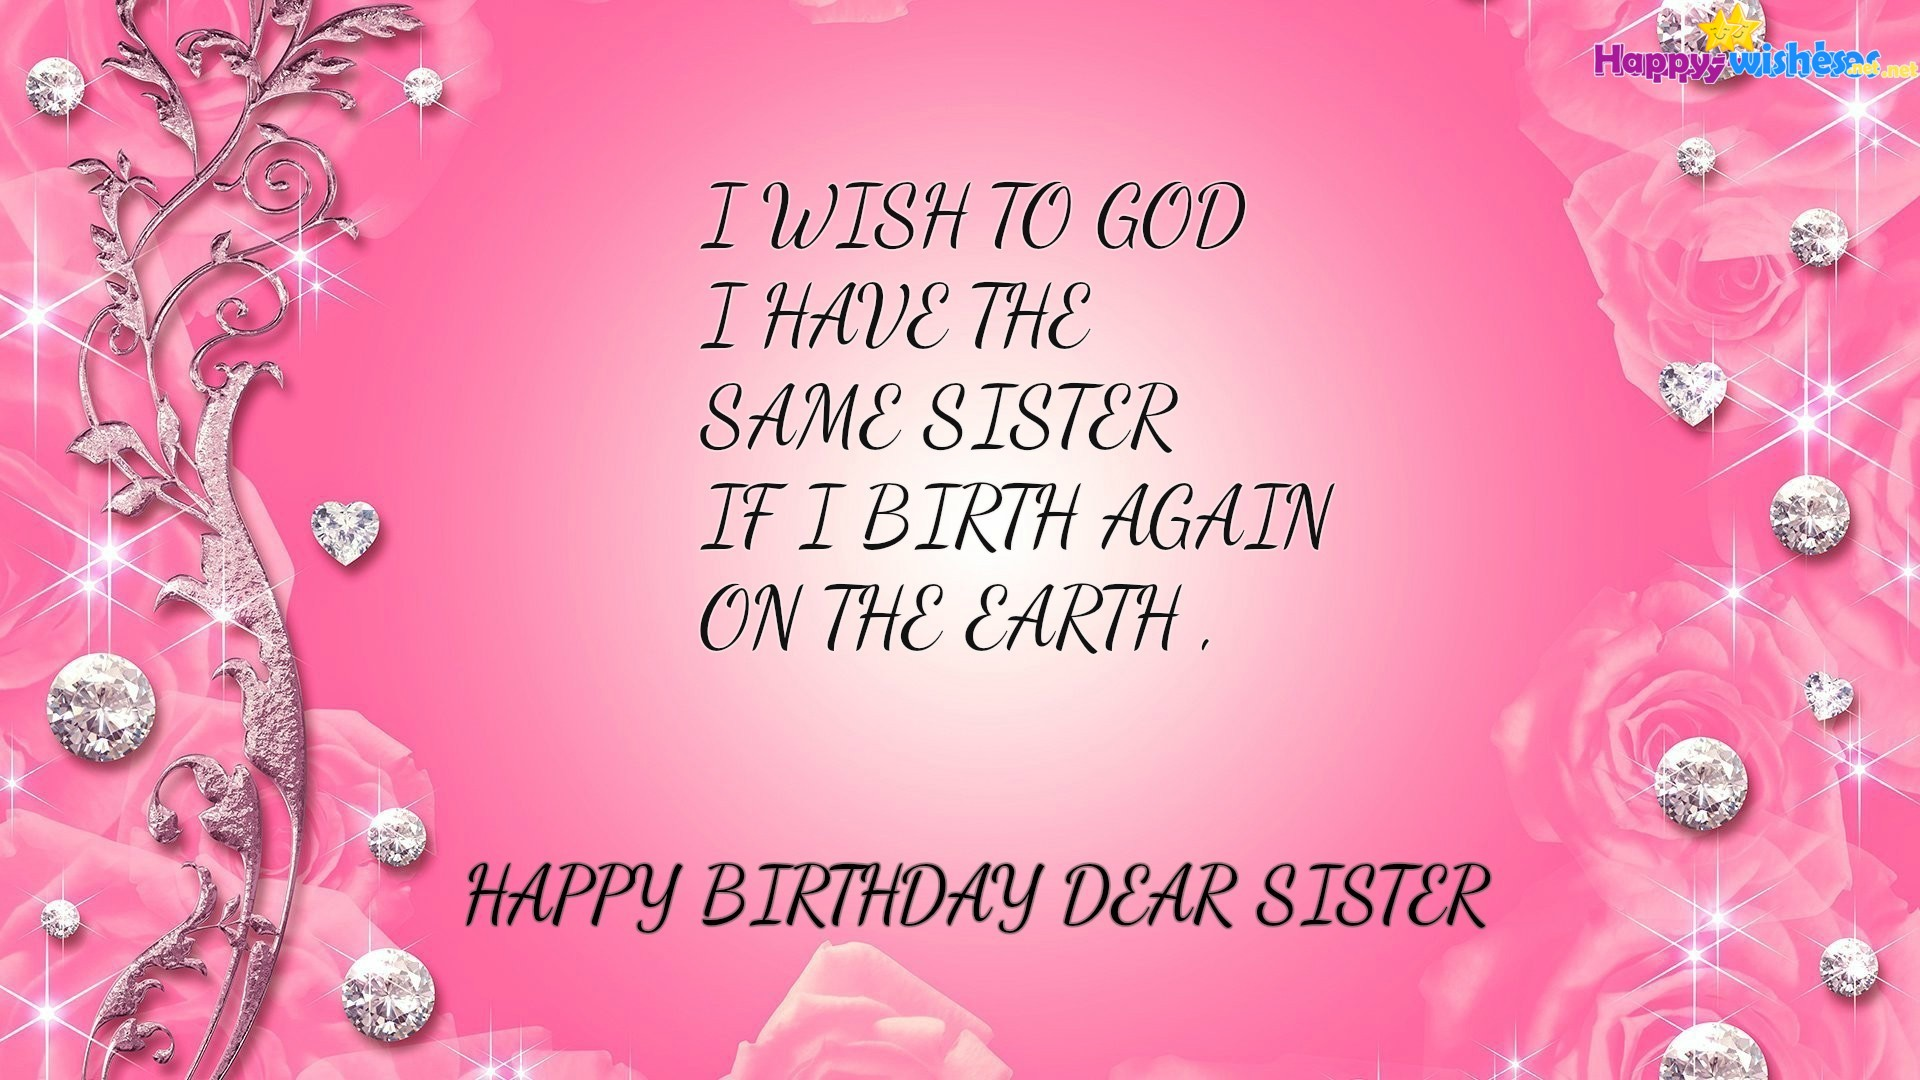 Happy Birthday Sister Wallpapers Hd Download Free Background Beauty Hd Pink 1920x1080 Download Hd Wallpaper Wallpapertip